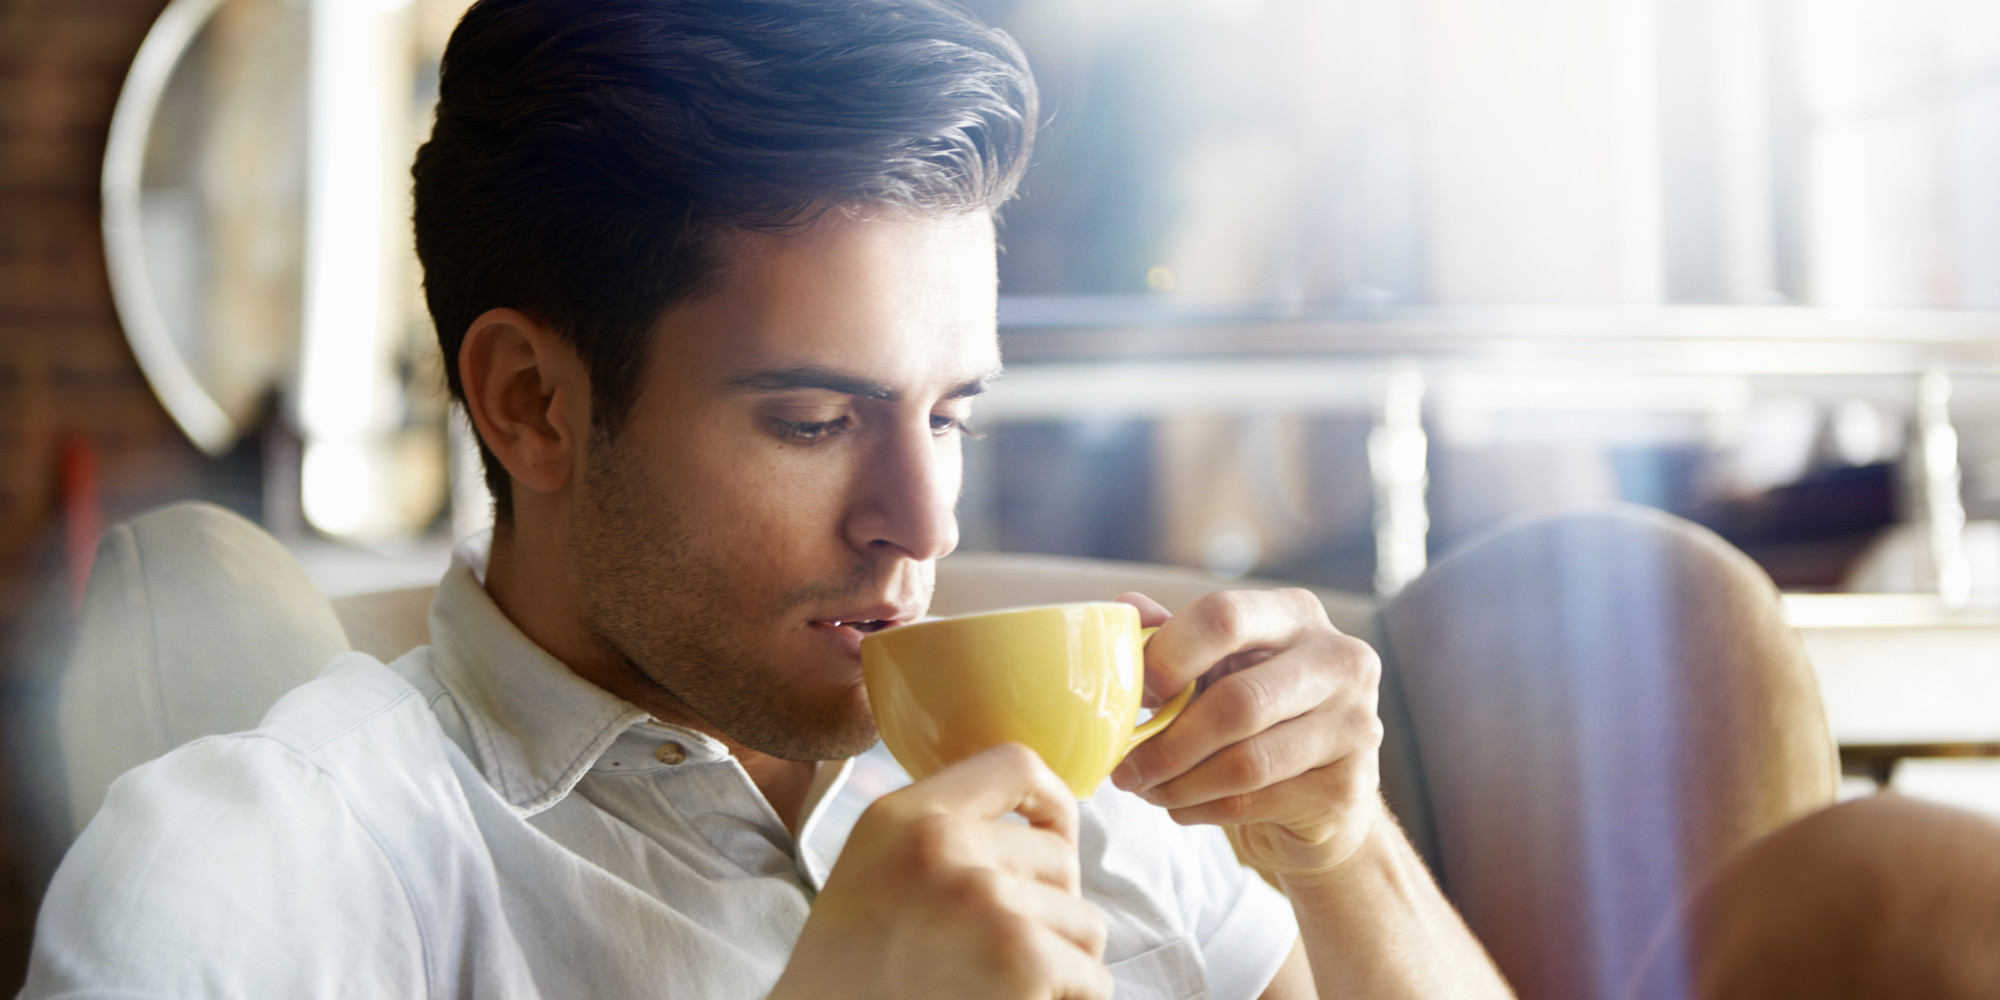 Man Drinking Coffee - Coffee Drinker